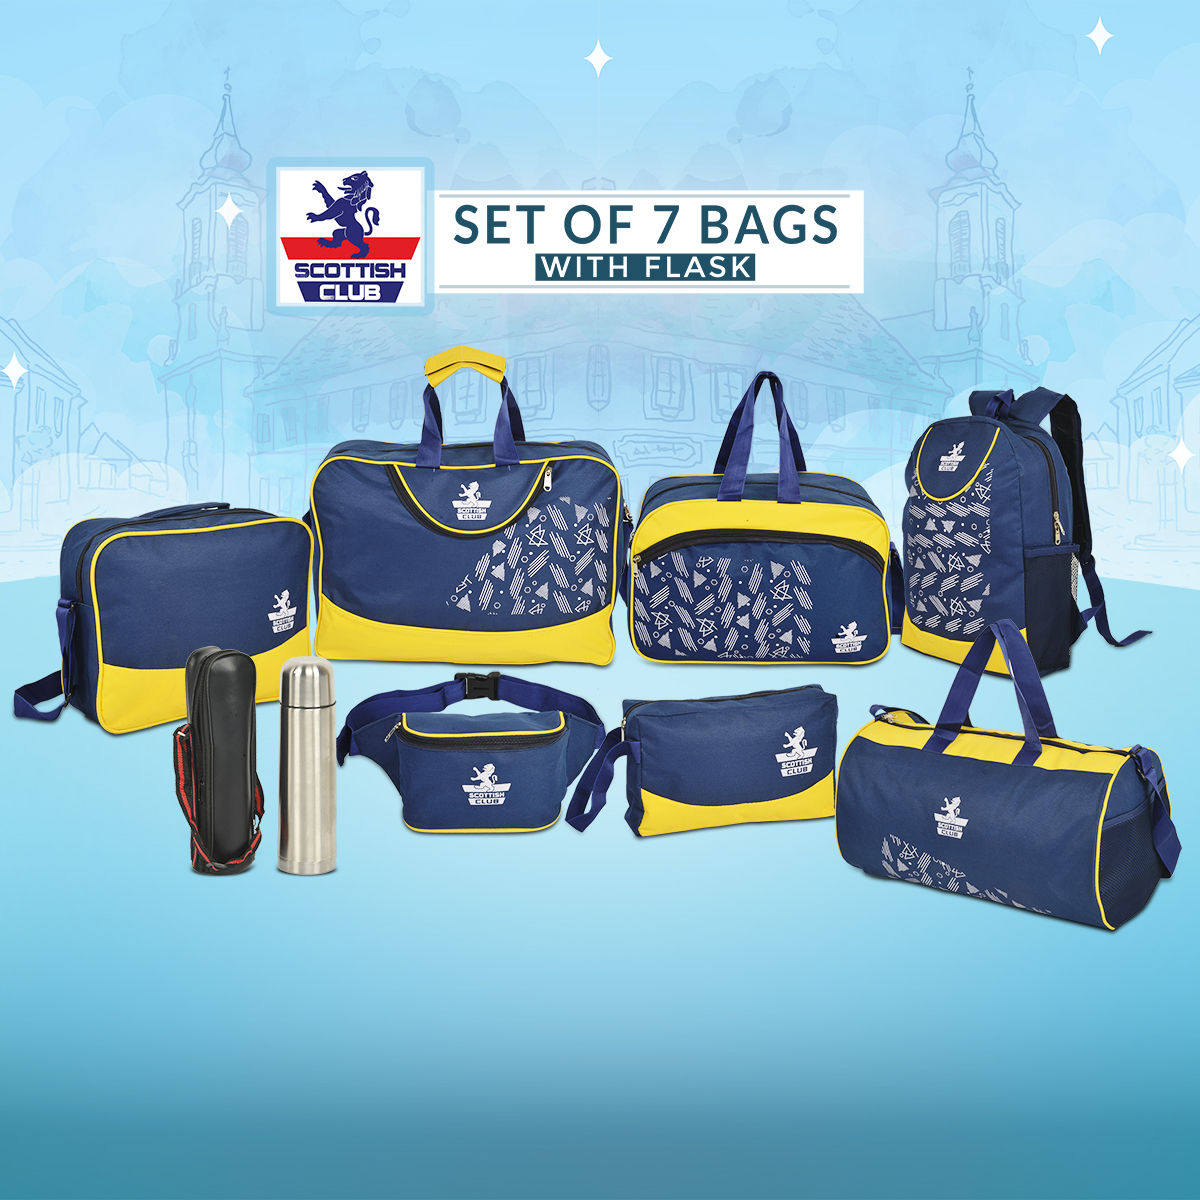 a5e40f28cc2 Buy Scottish Club Set of 7 Bags with Flask Online at Best Price in India on  Naaptol.com